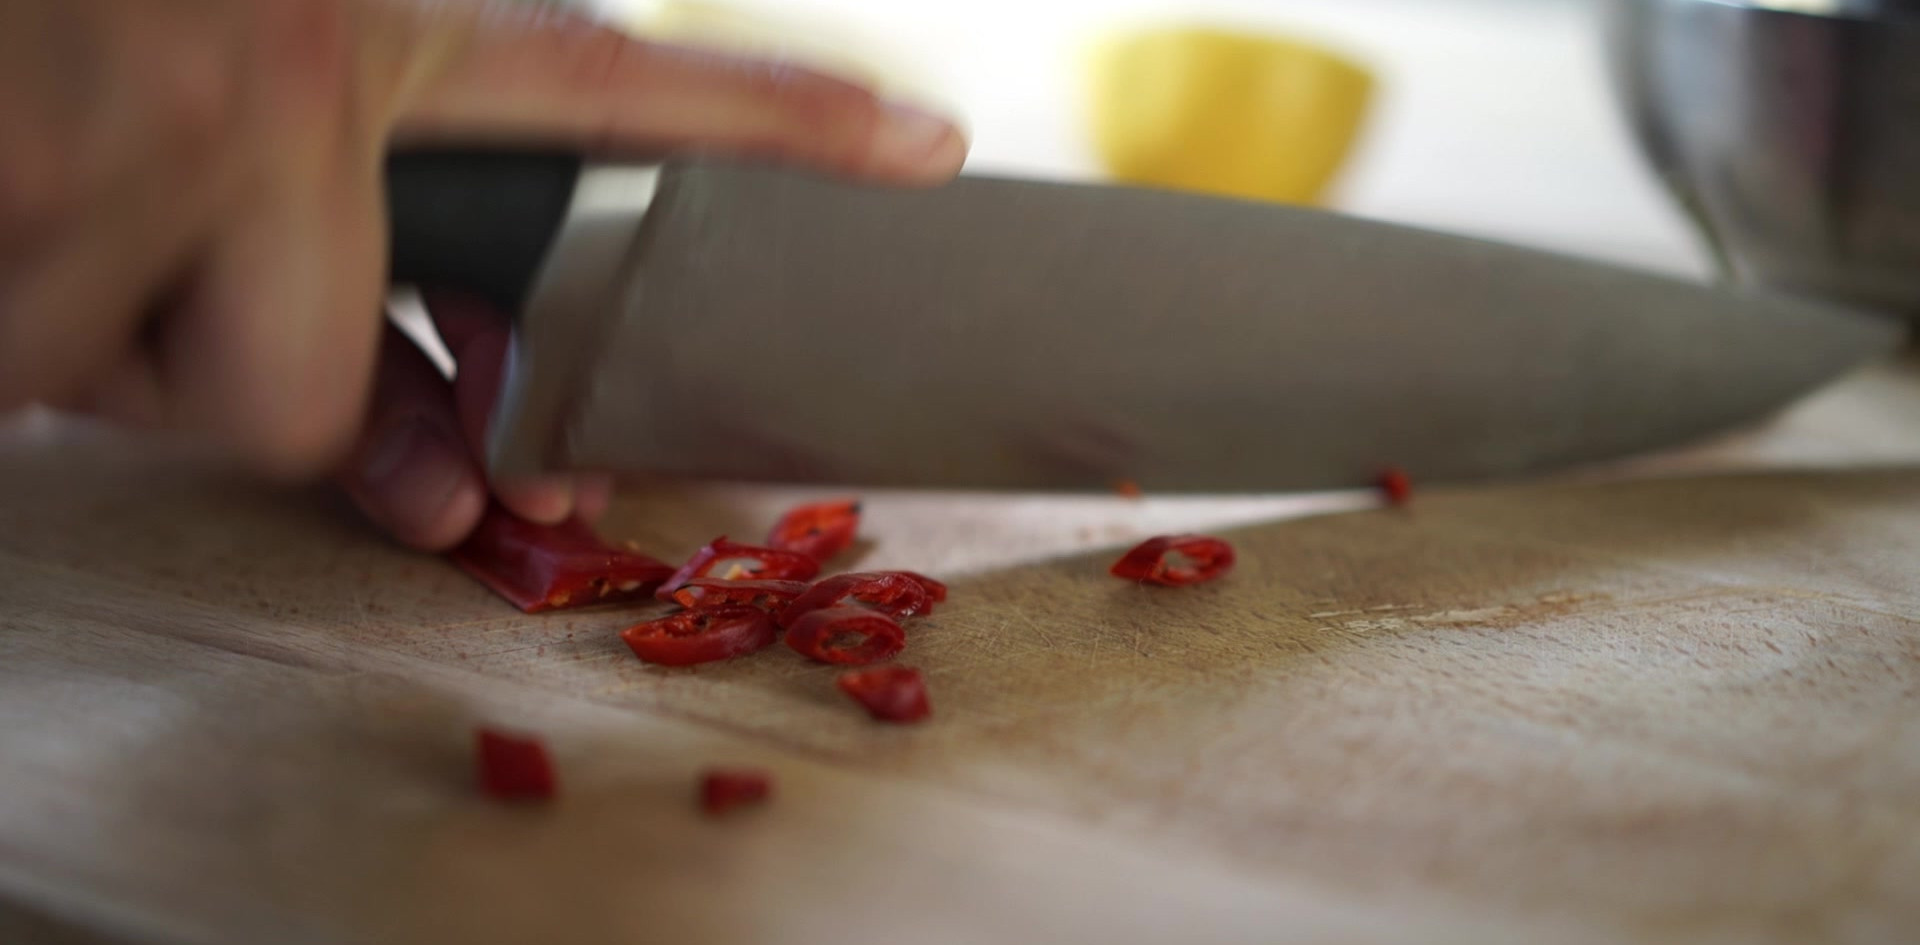 Chopping Chilis